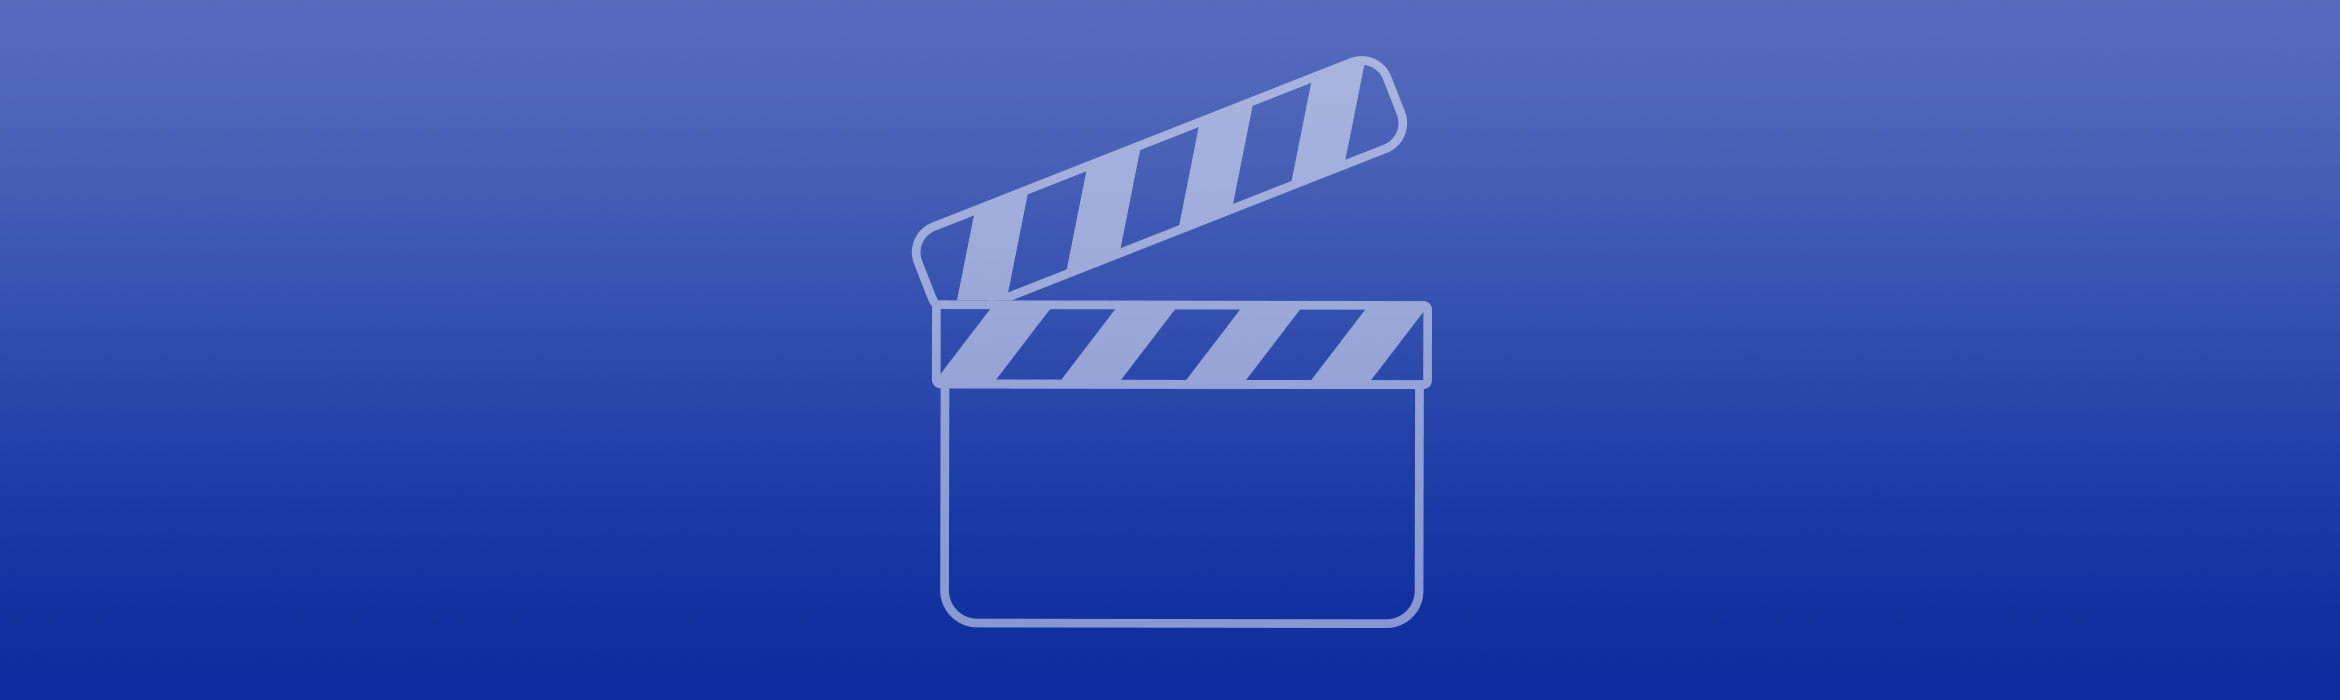 Video gallery on blue background